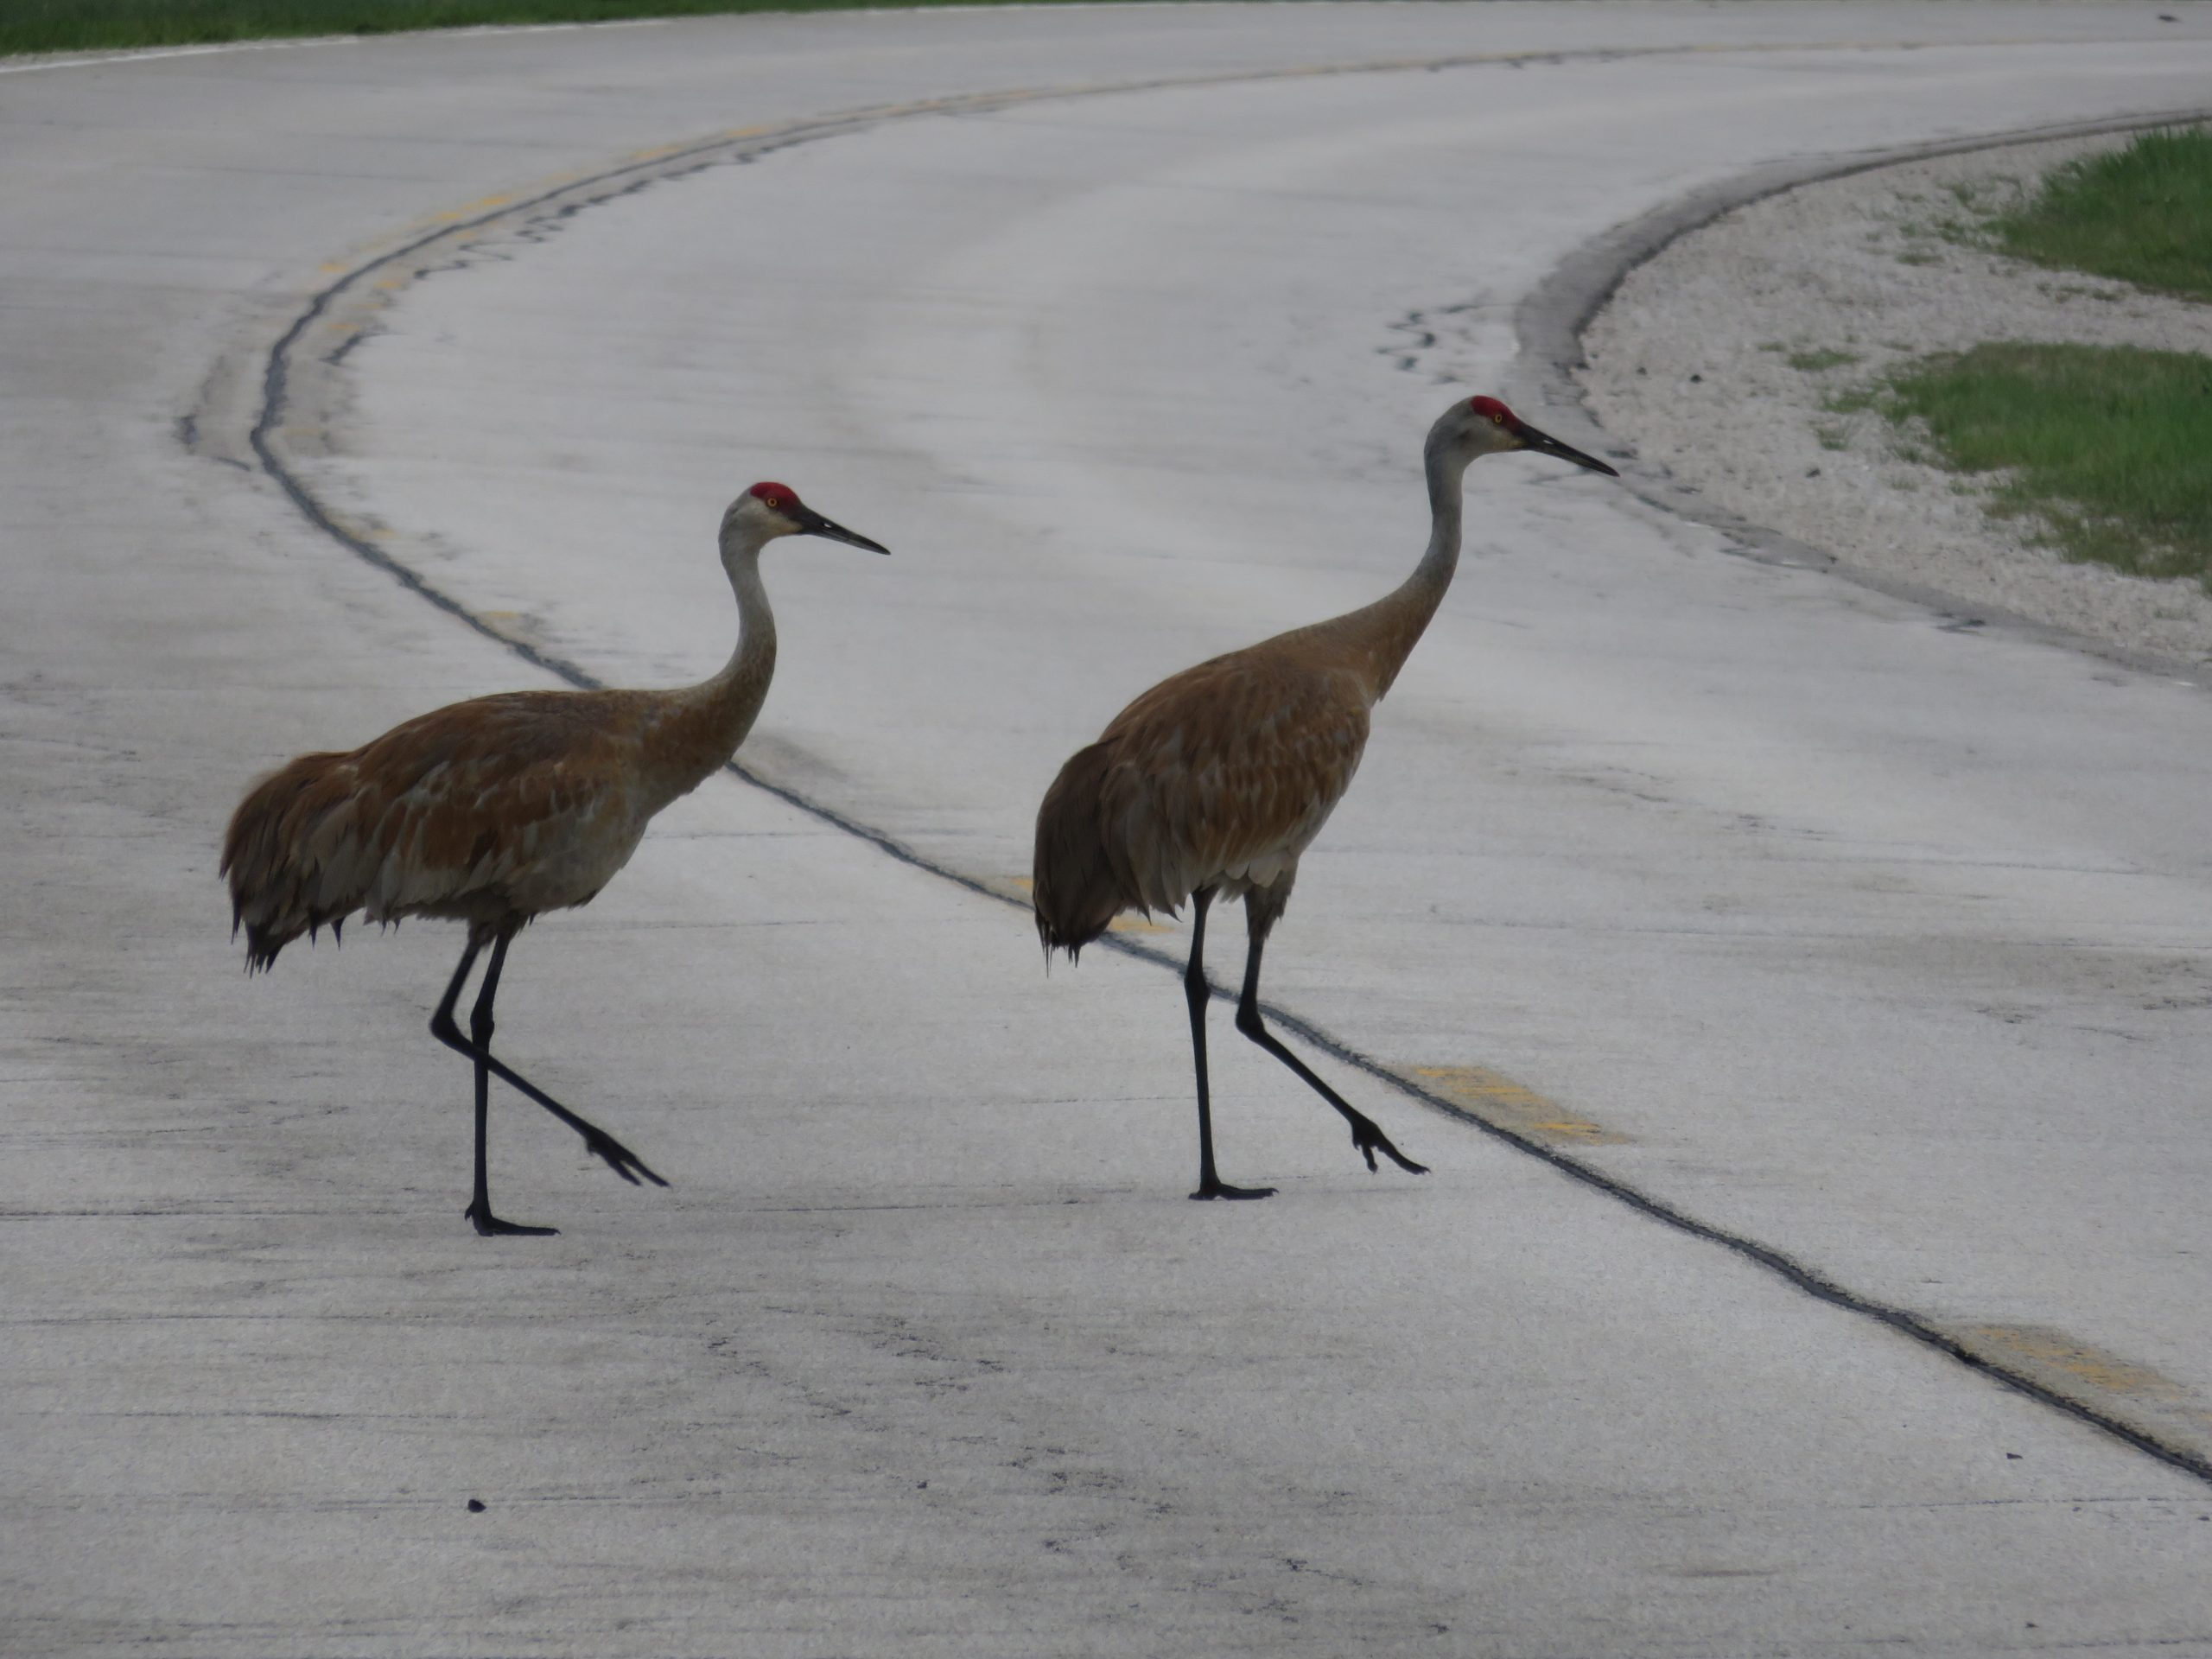 (2/2) Here they are, spotted crossing the street on a hot July day. Photo: Barb Kristen, nature, wildlife, animal, bird, sandhill crane